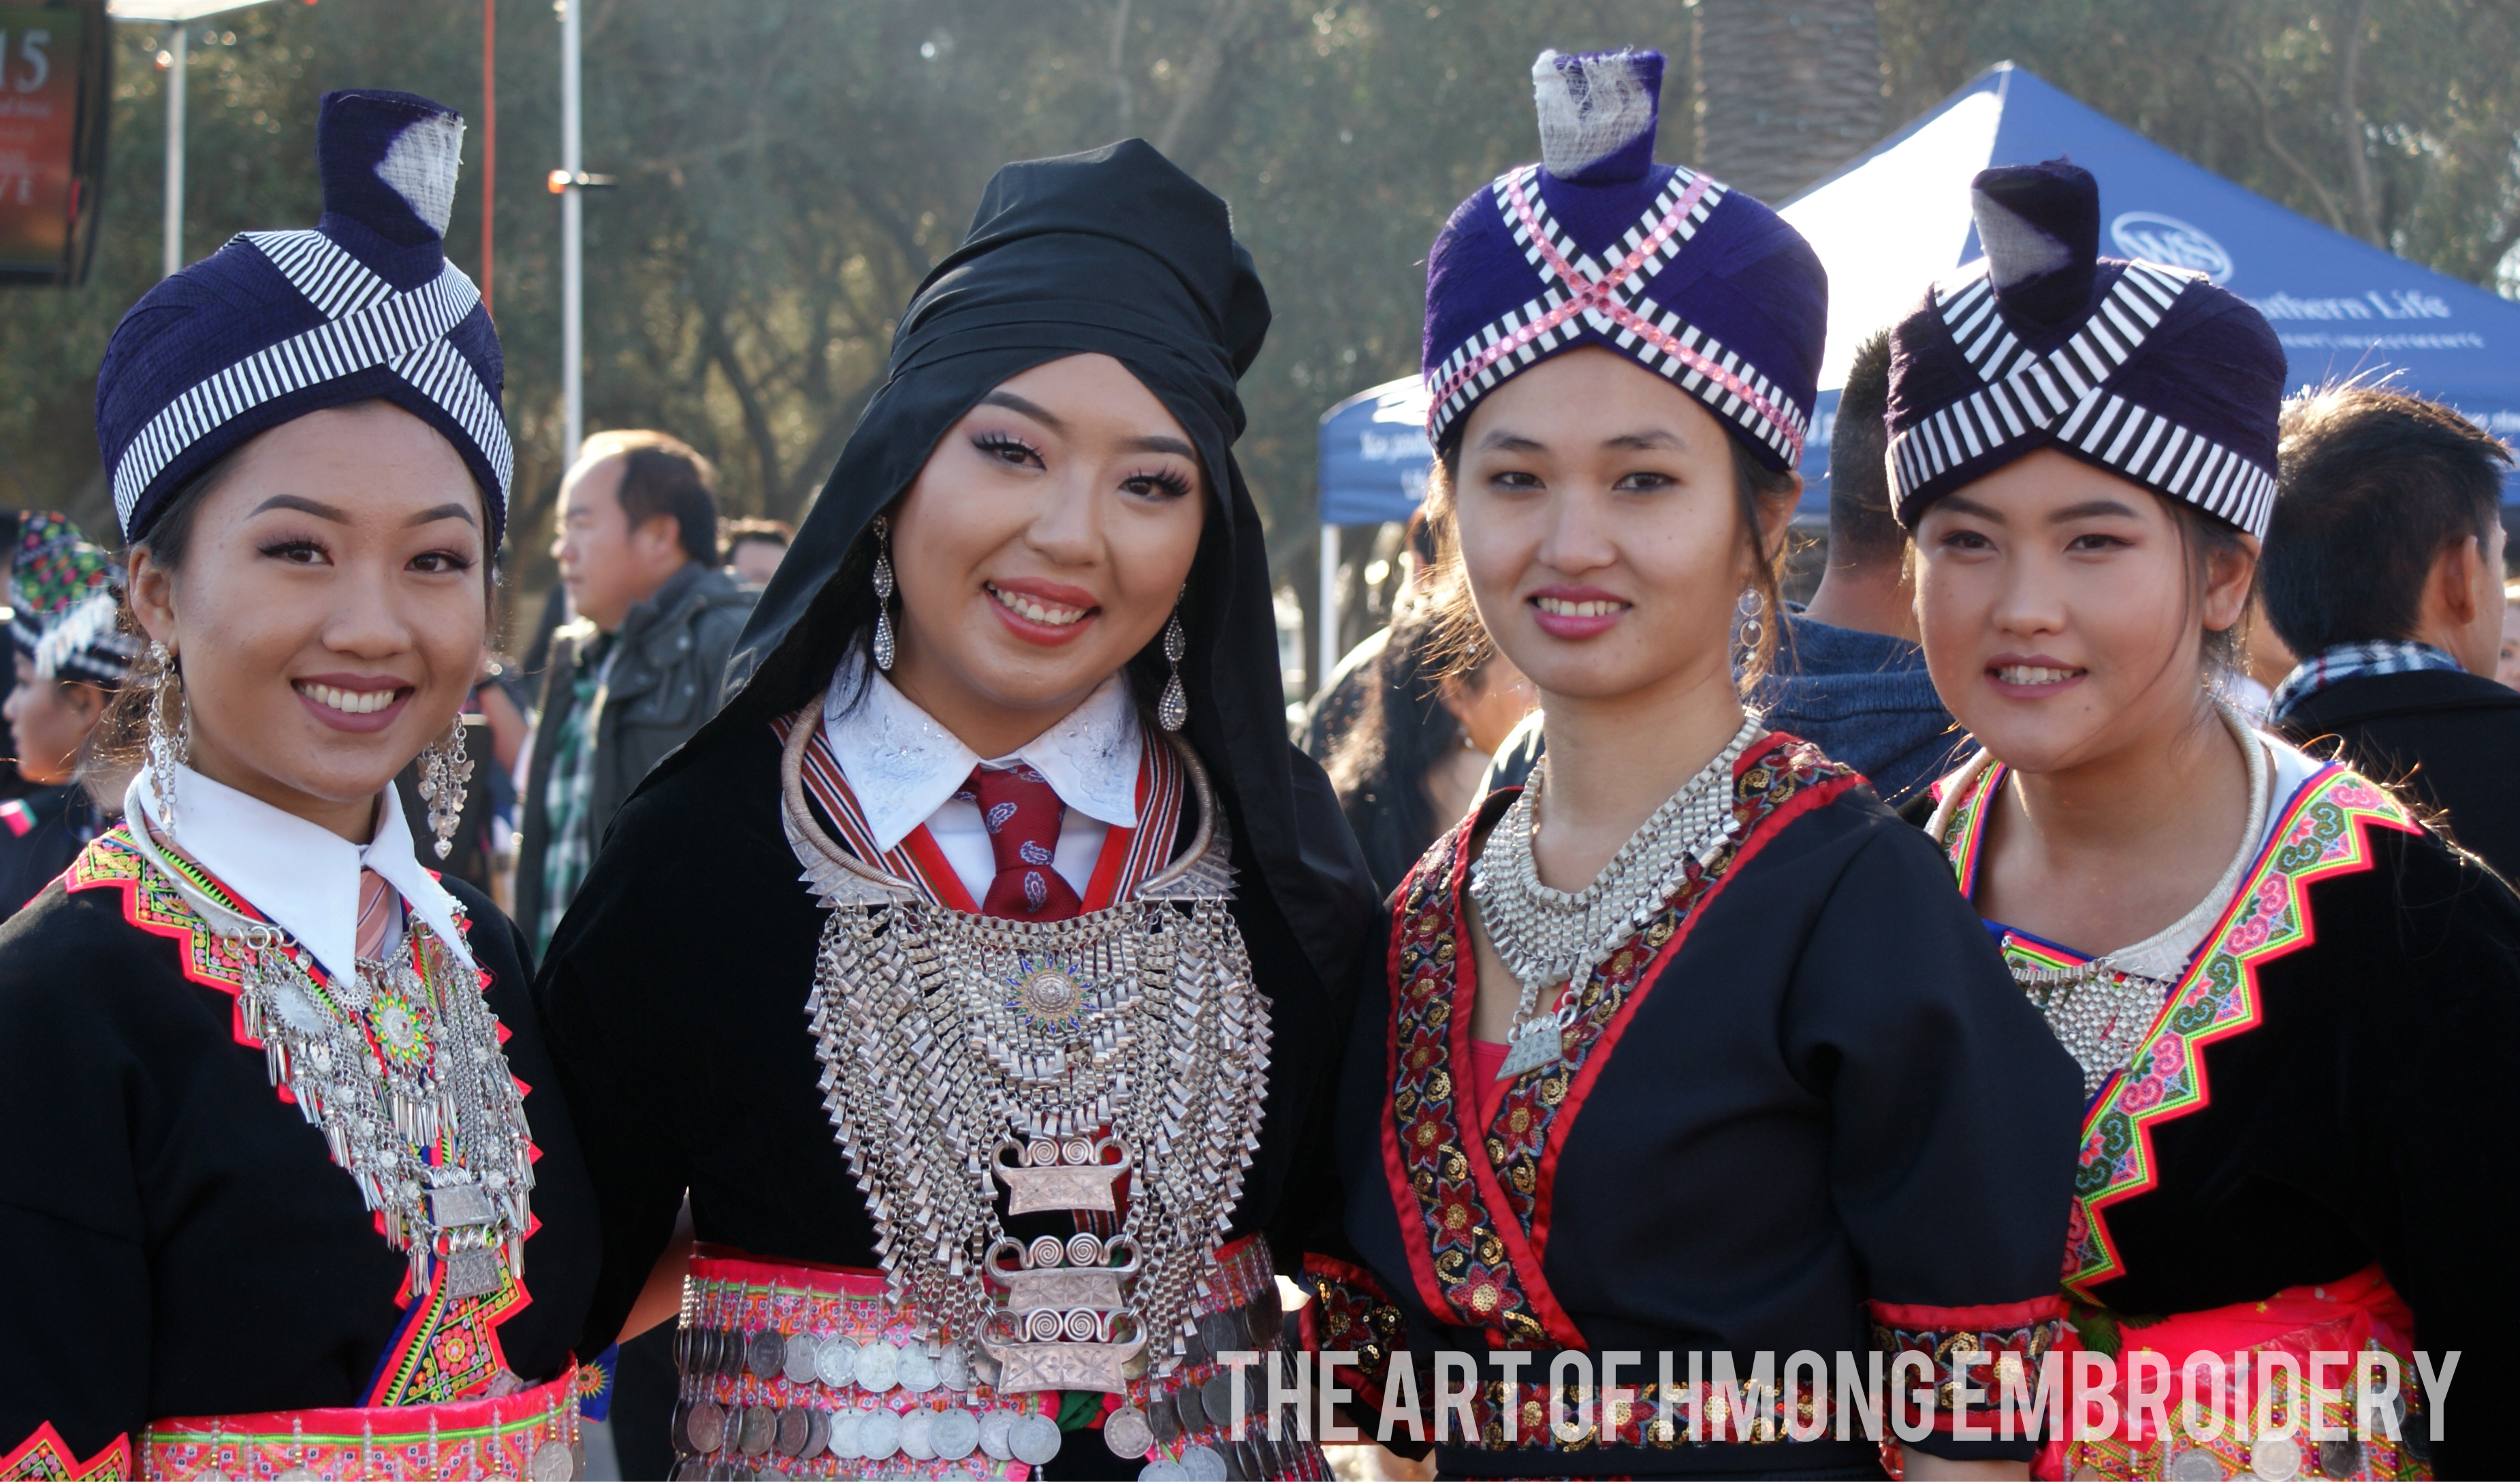 The Art Of Hmong Embroidery